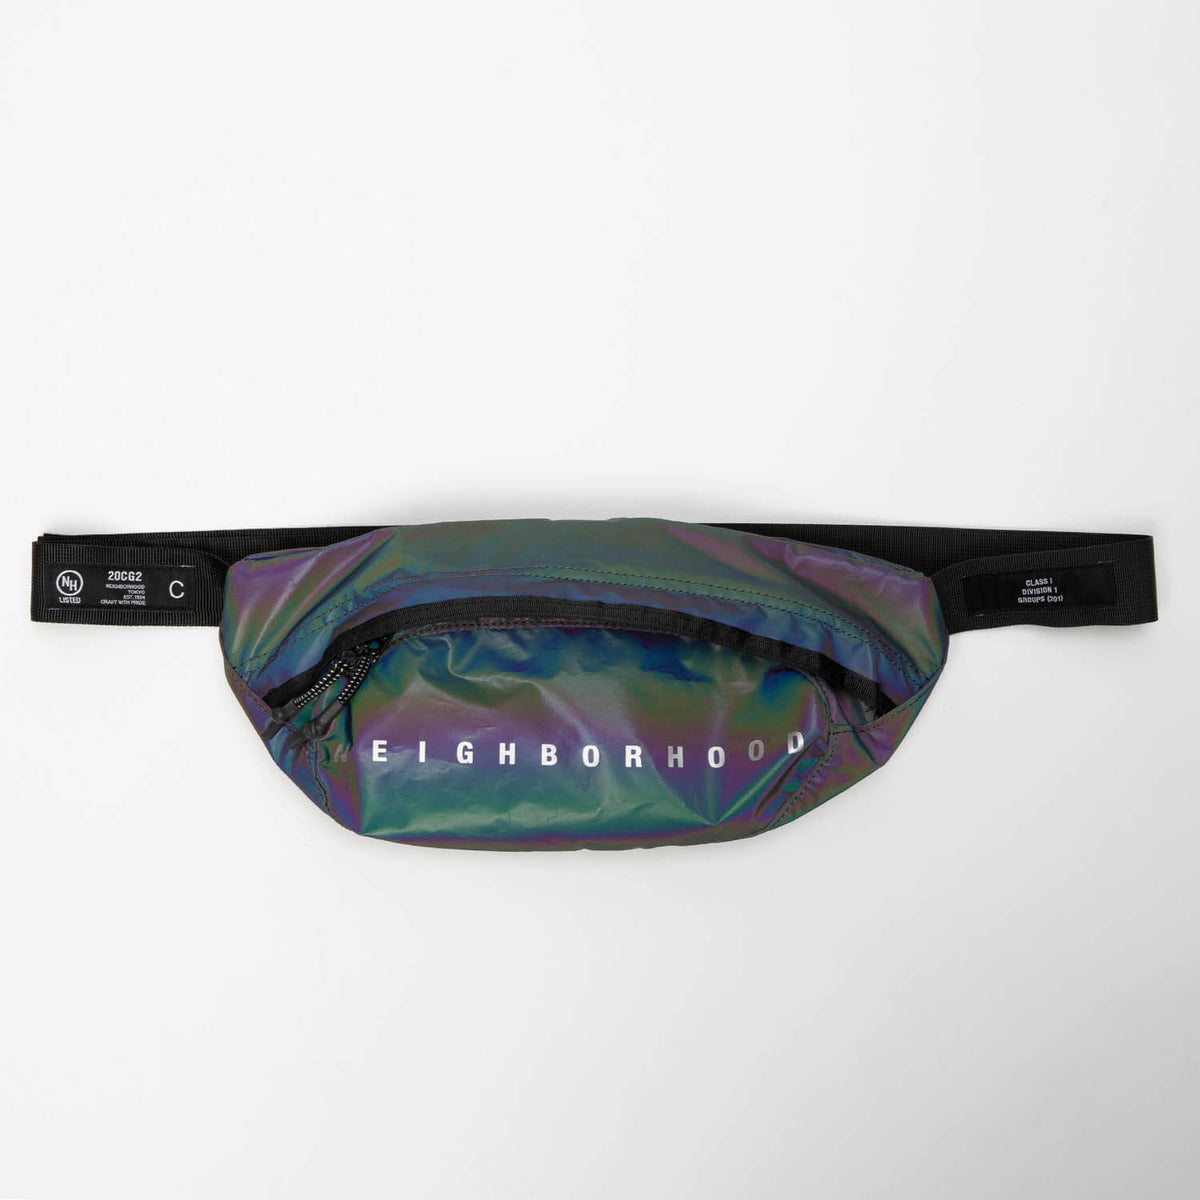 Neighborhood Stroll Waist Bag  - XHIBITION